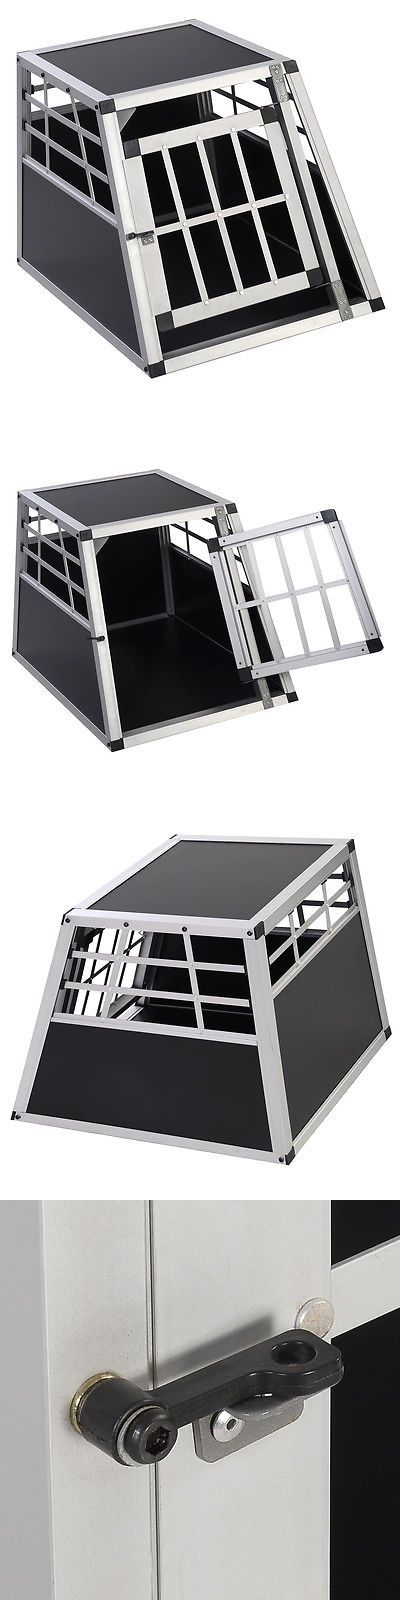 Cages and Crates 121851: Goplus Aluminum Dog Transport Box Dog Crate Kennel Pet Playpen Cage W/Lock 28H BUY IT NOW ONLY: $64.99